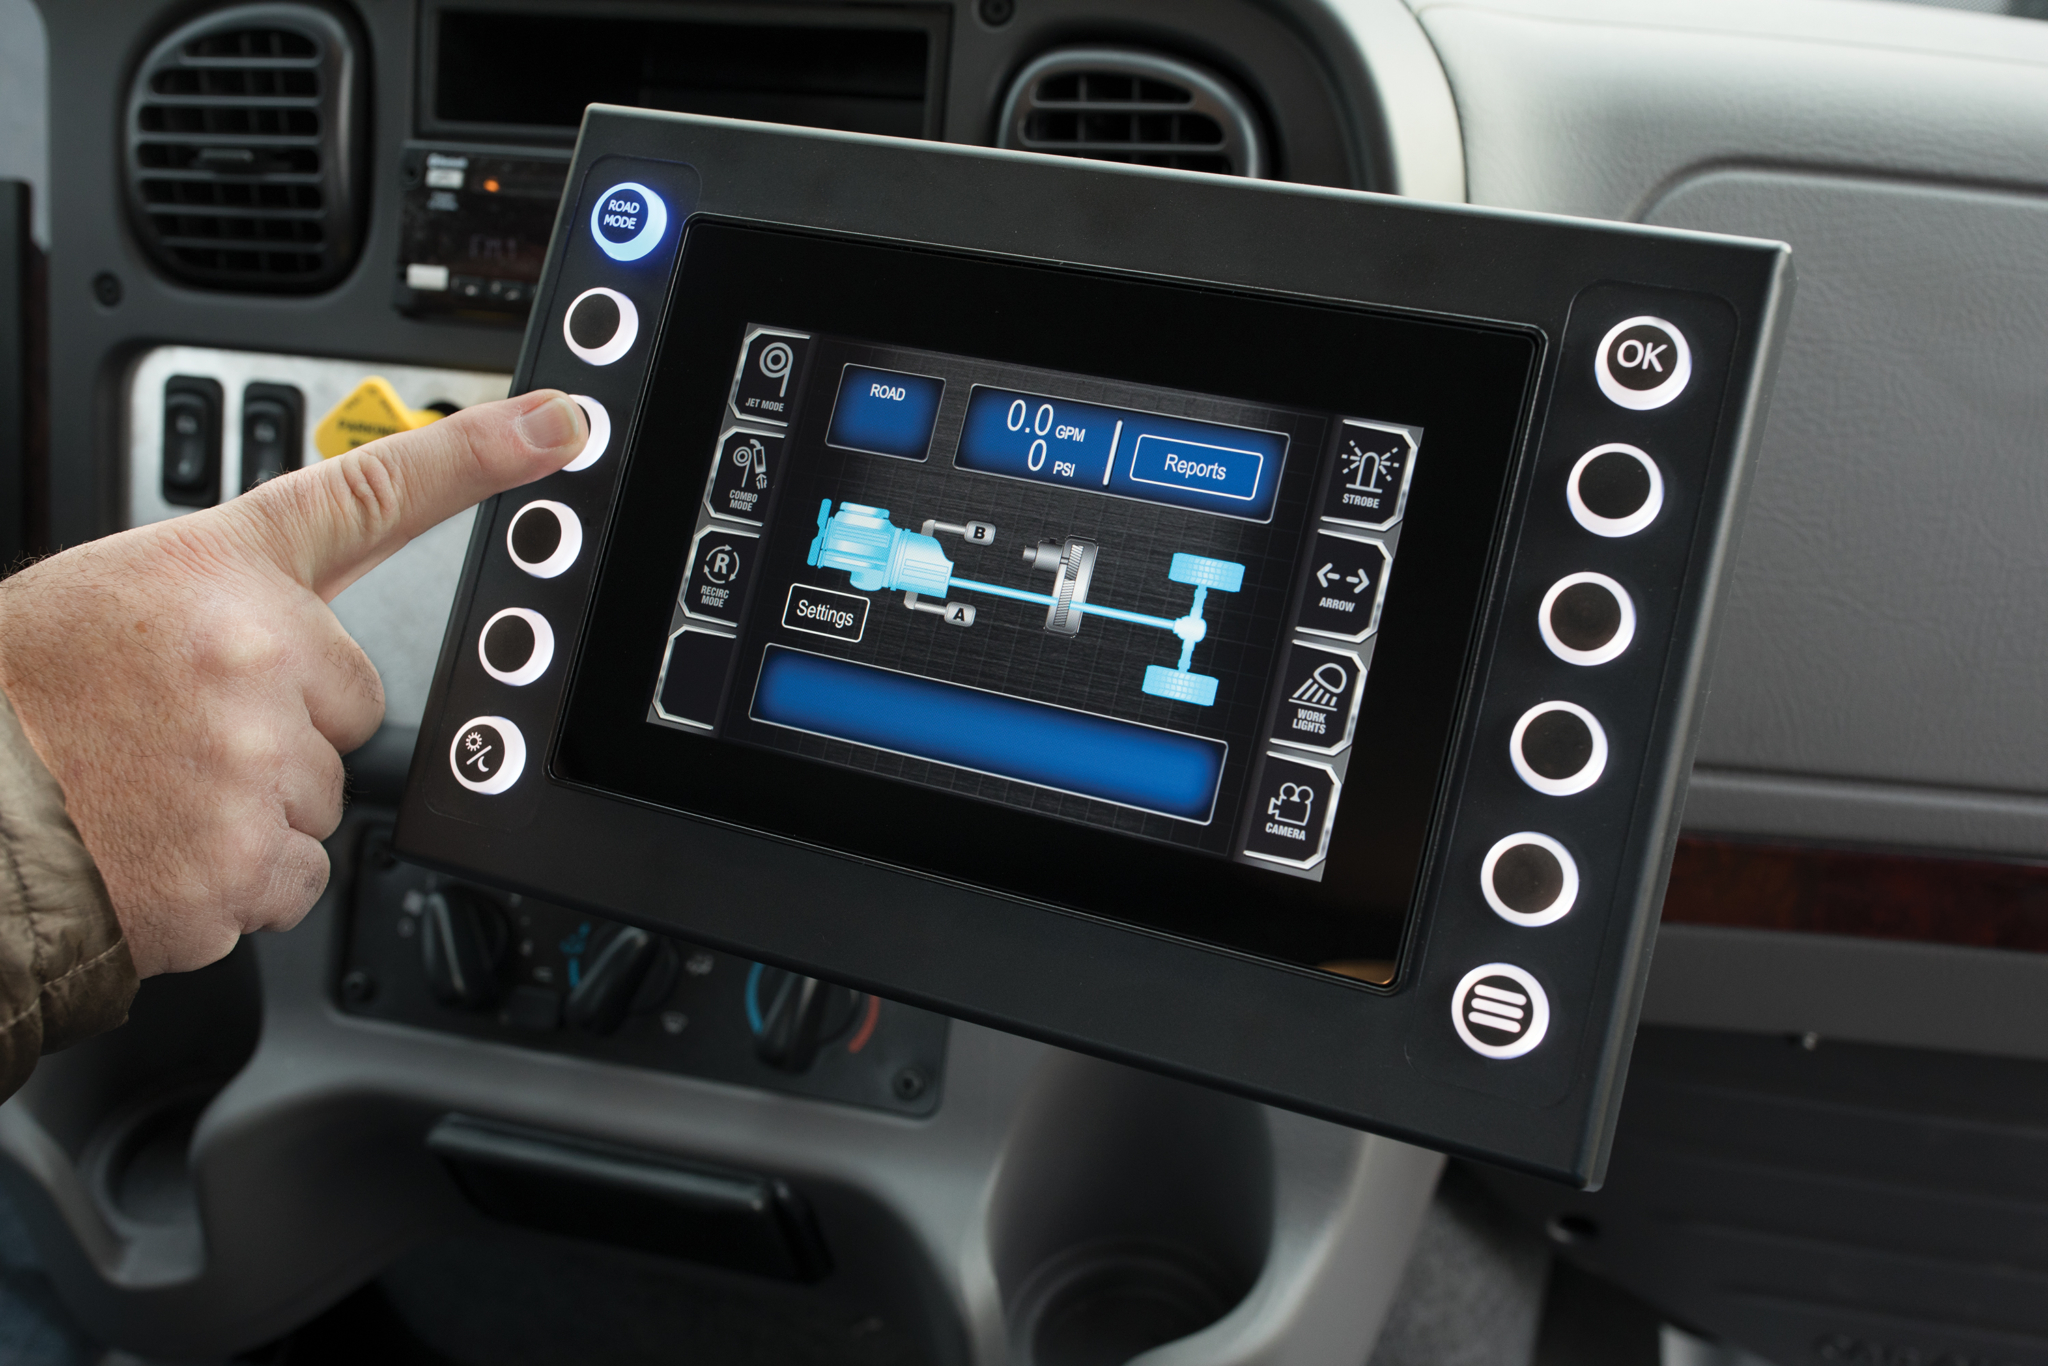 The in-cab controls